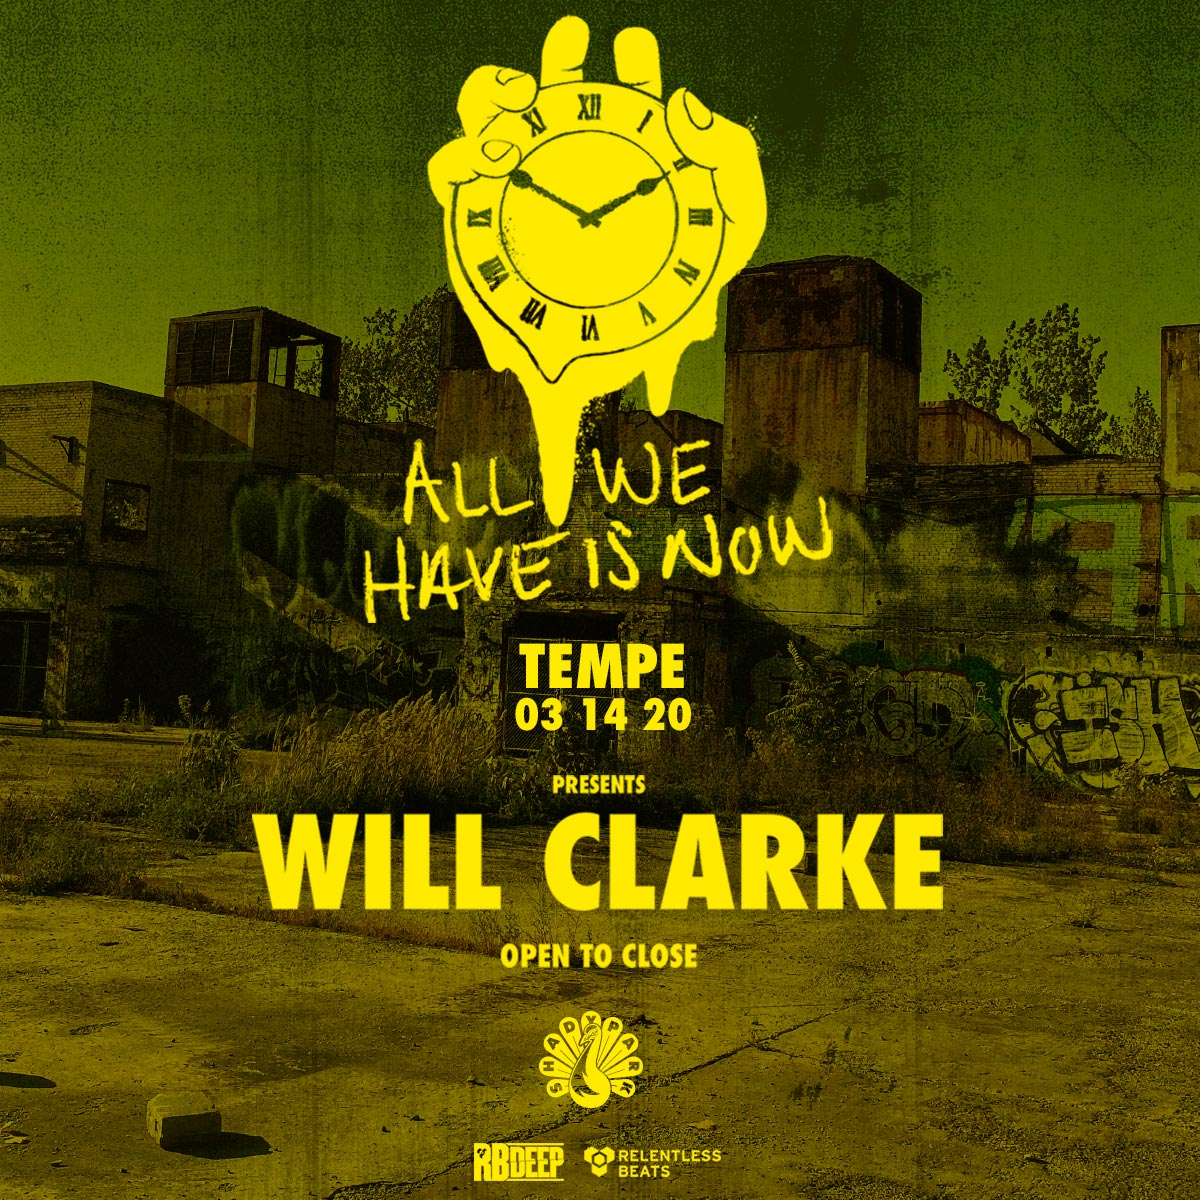 Flyer for Will Clarke